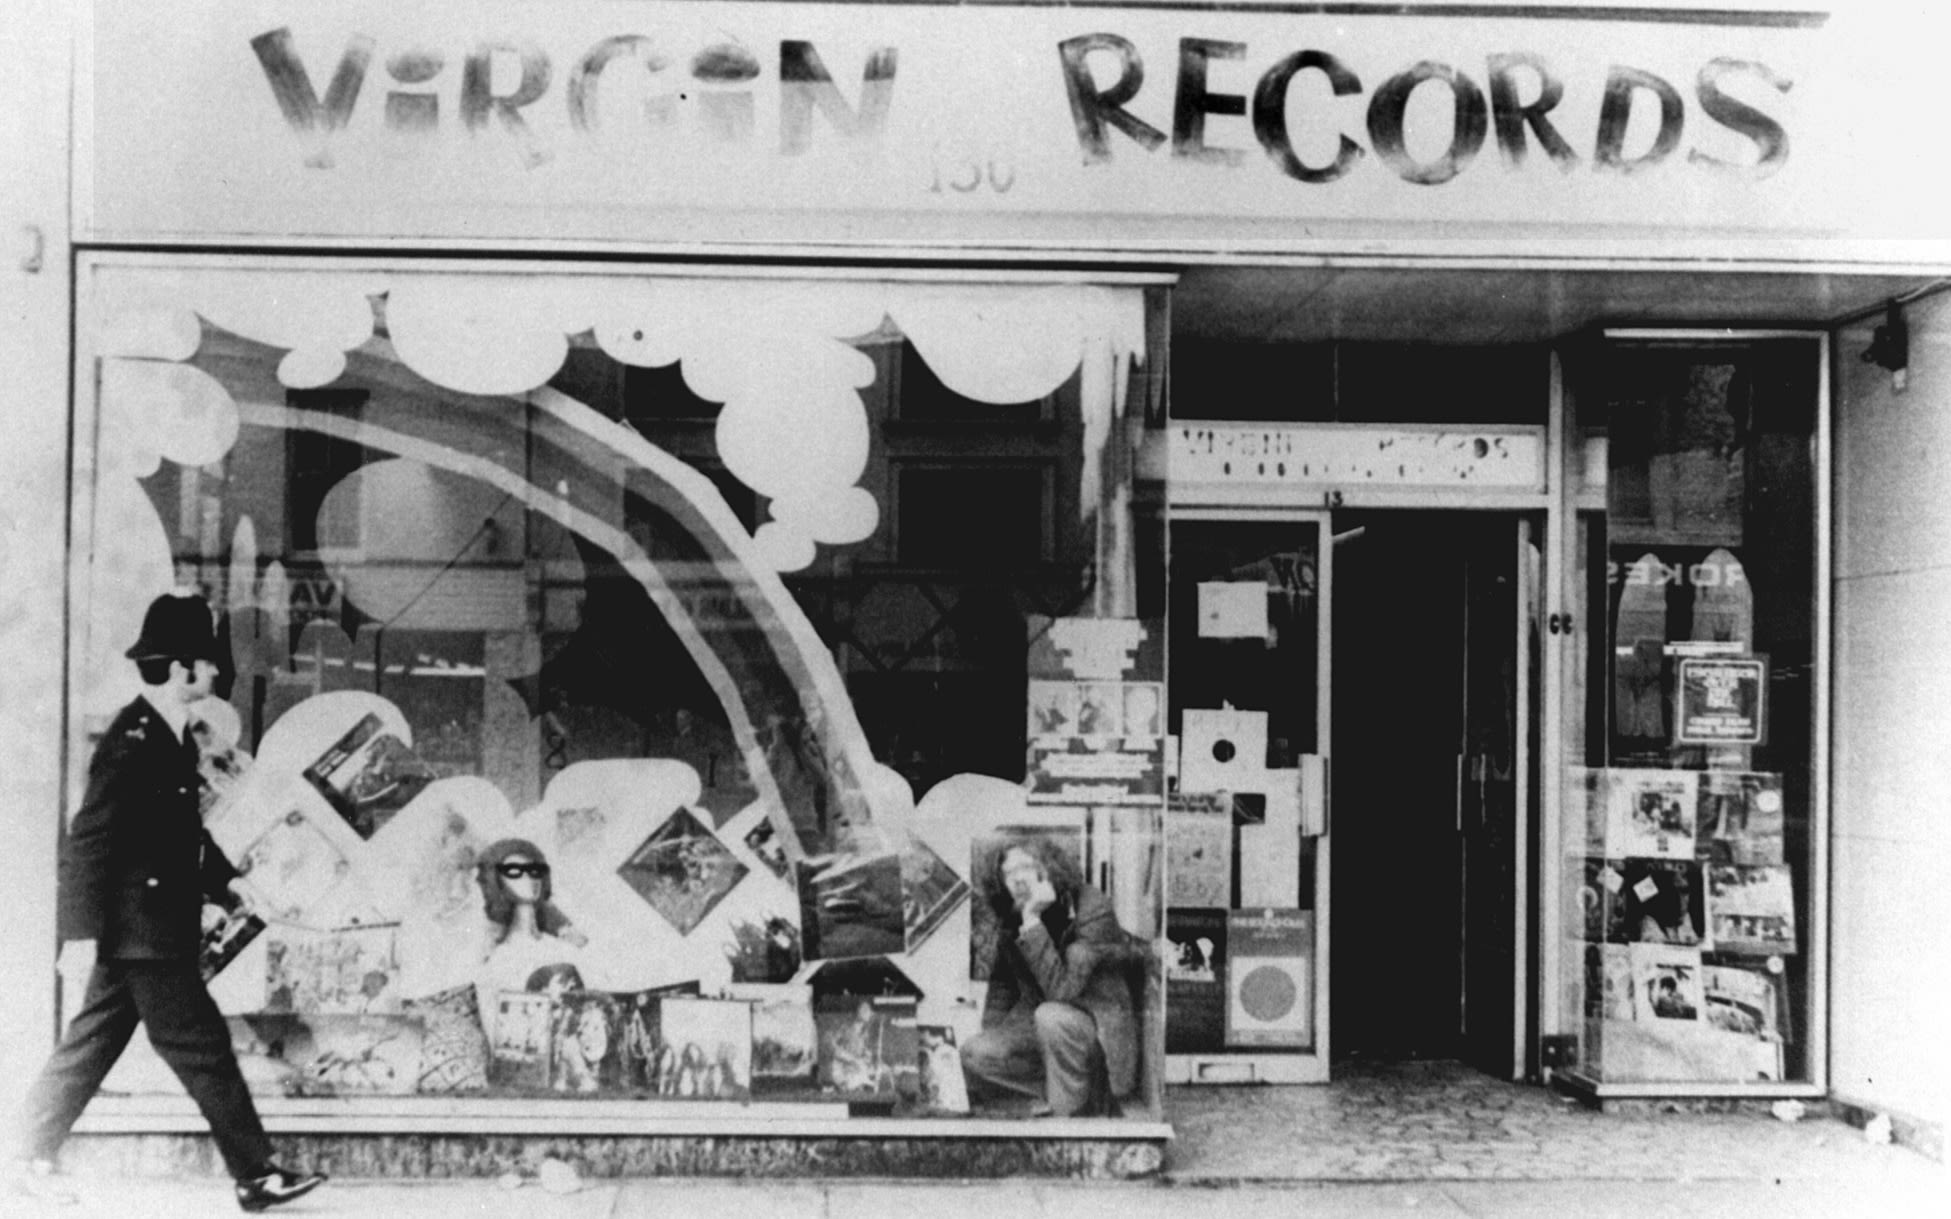 A black and white photo of a policeman walking past the original Virgin Records store on Oxford Street while Richard Branson sits in the window